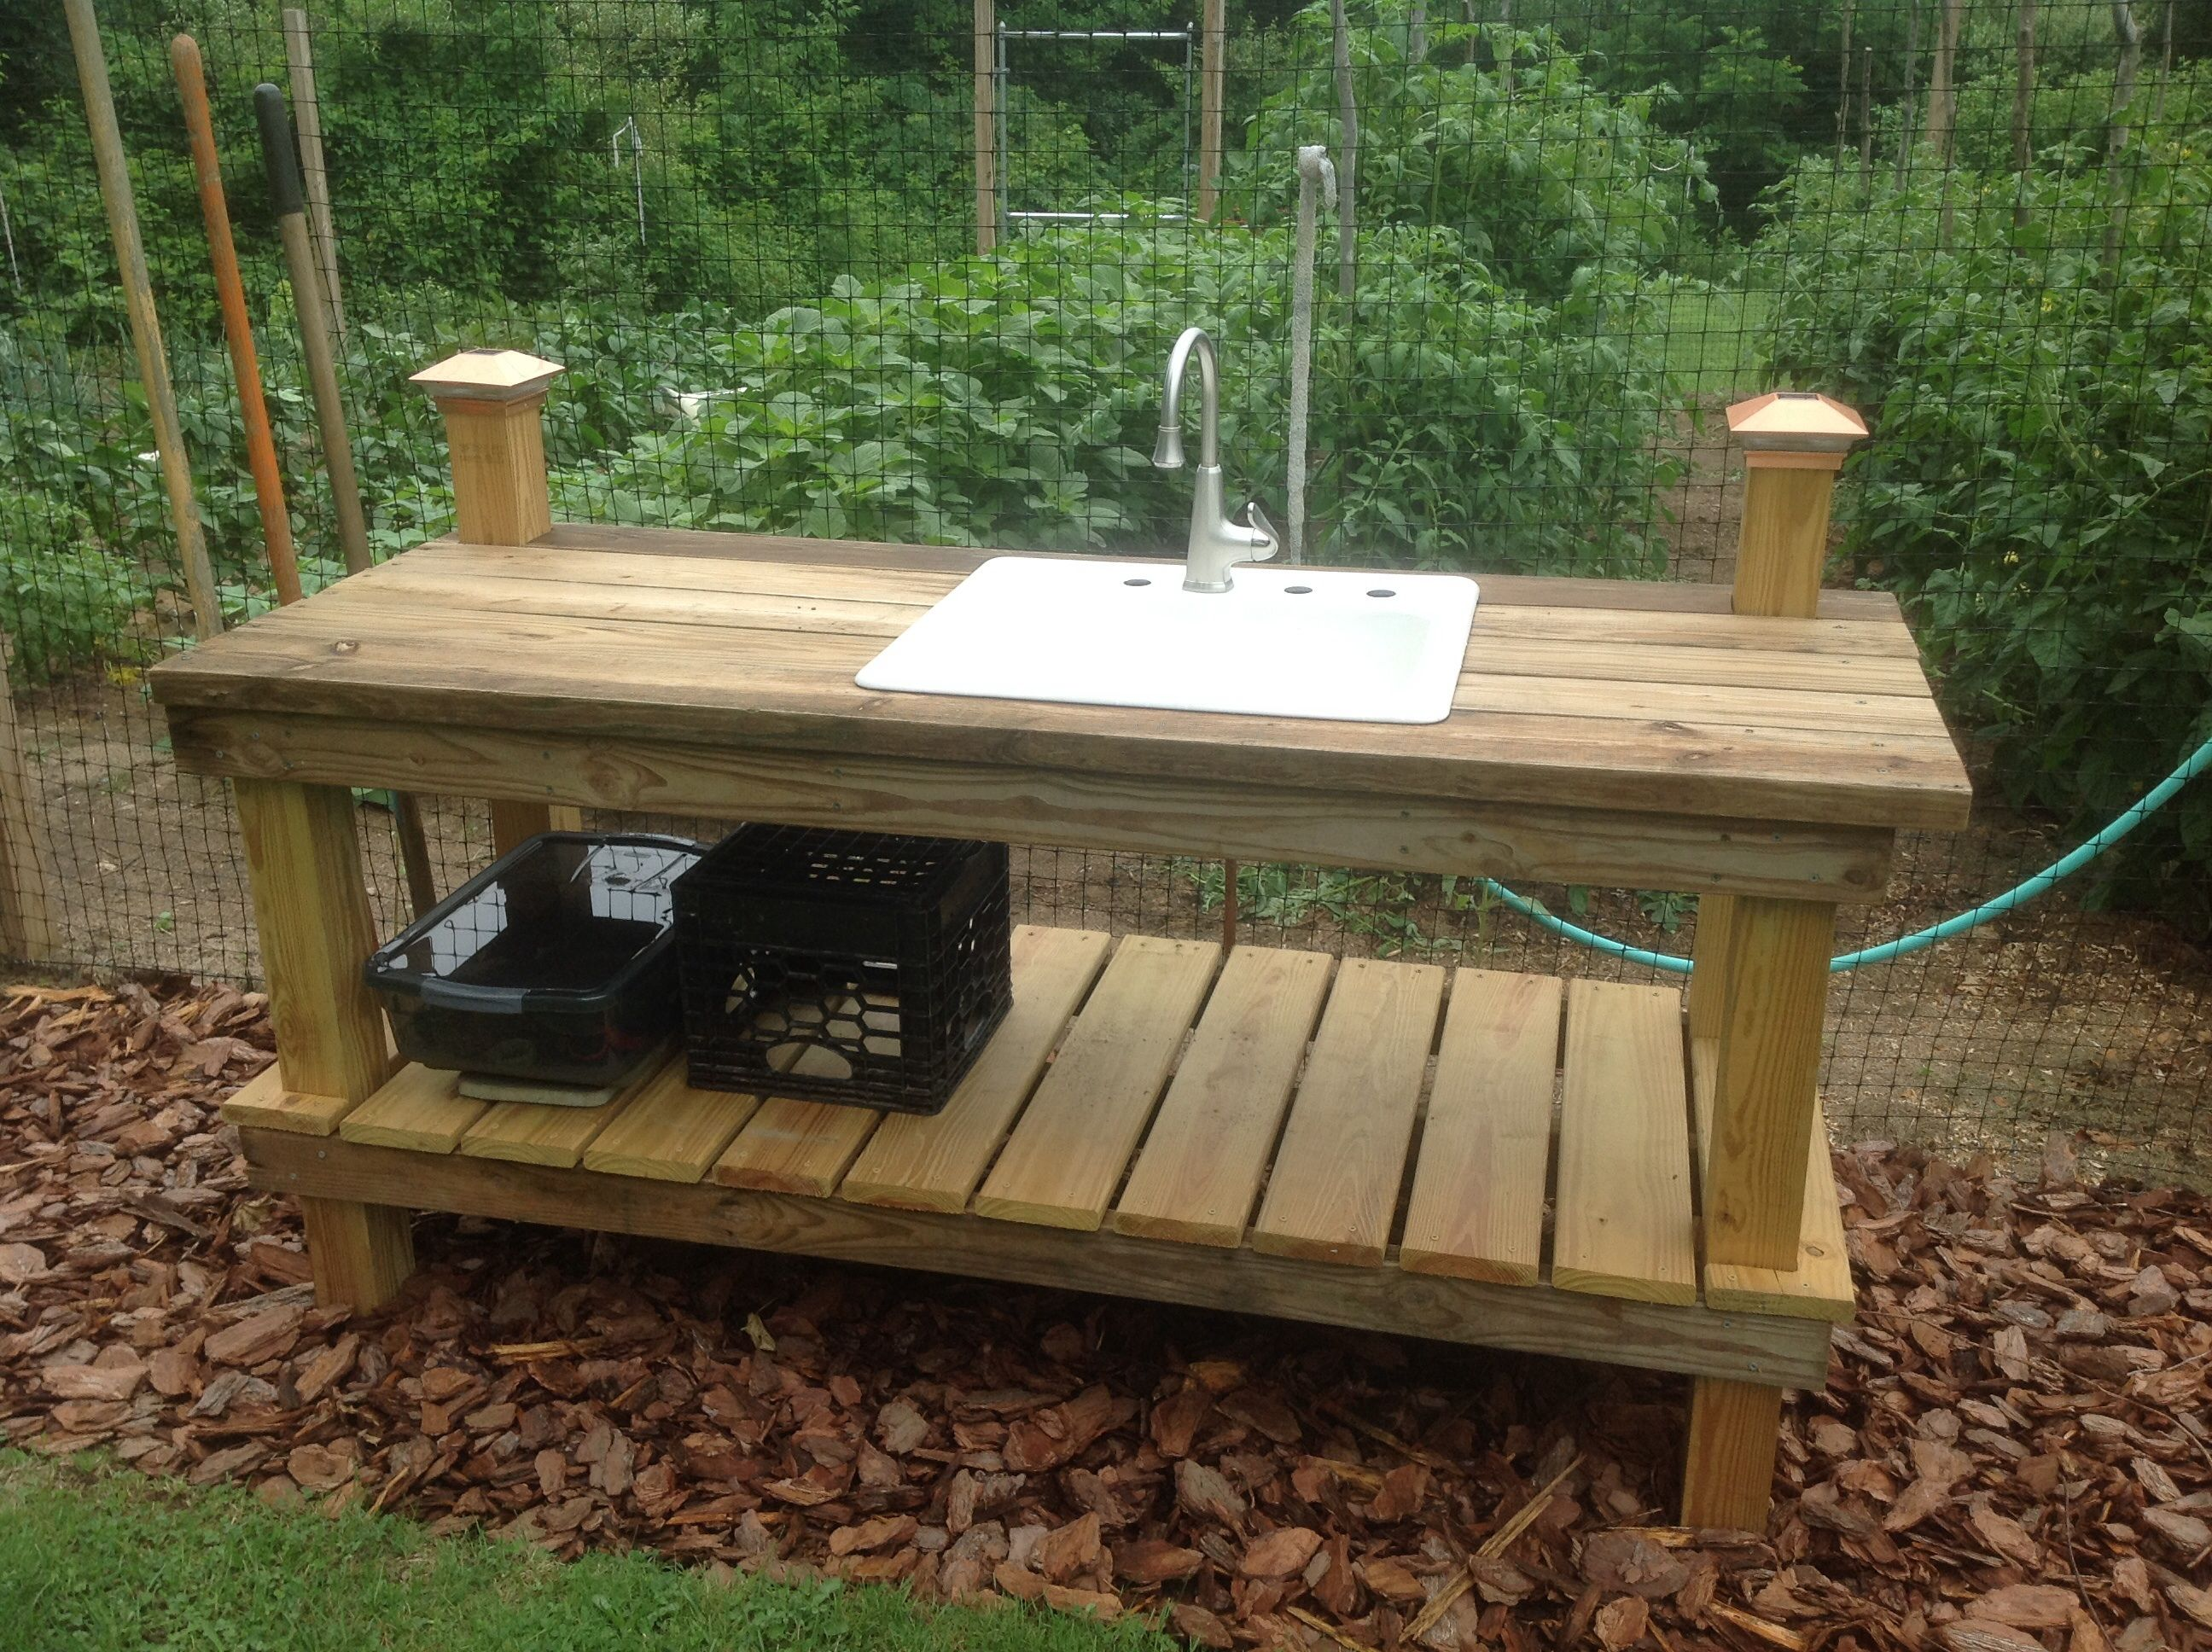 Potting Bench For Father S Day Diy Outdoor Furniture Plans Potting Bench Outdoor Furniture Plans